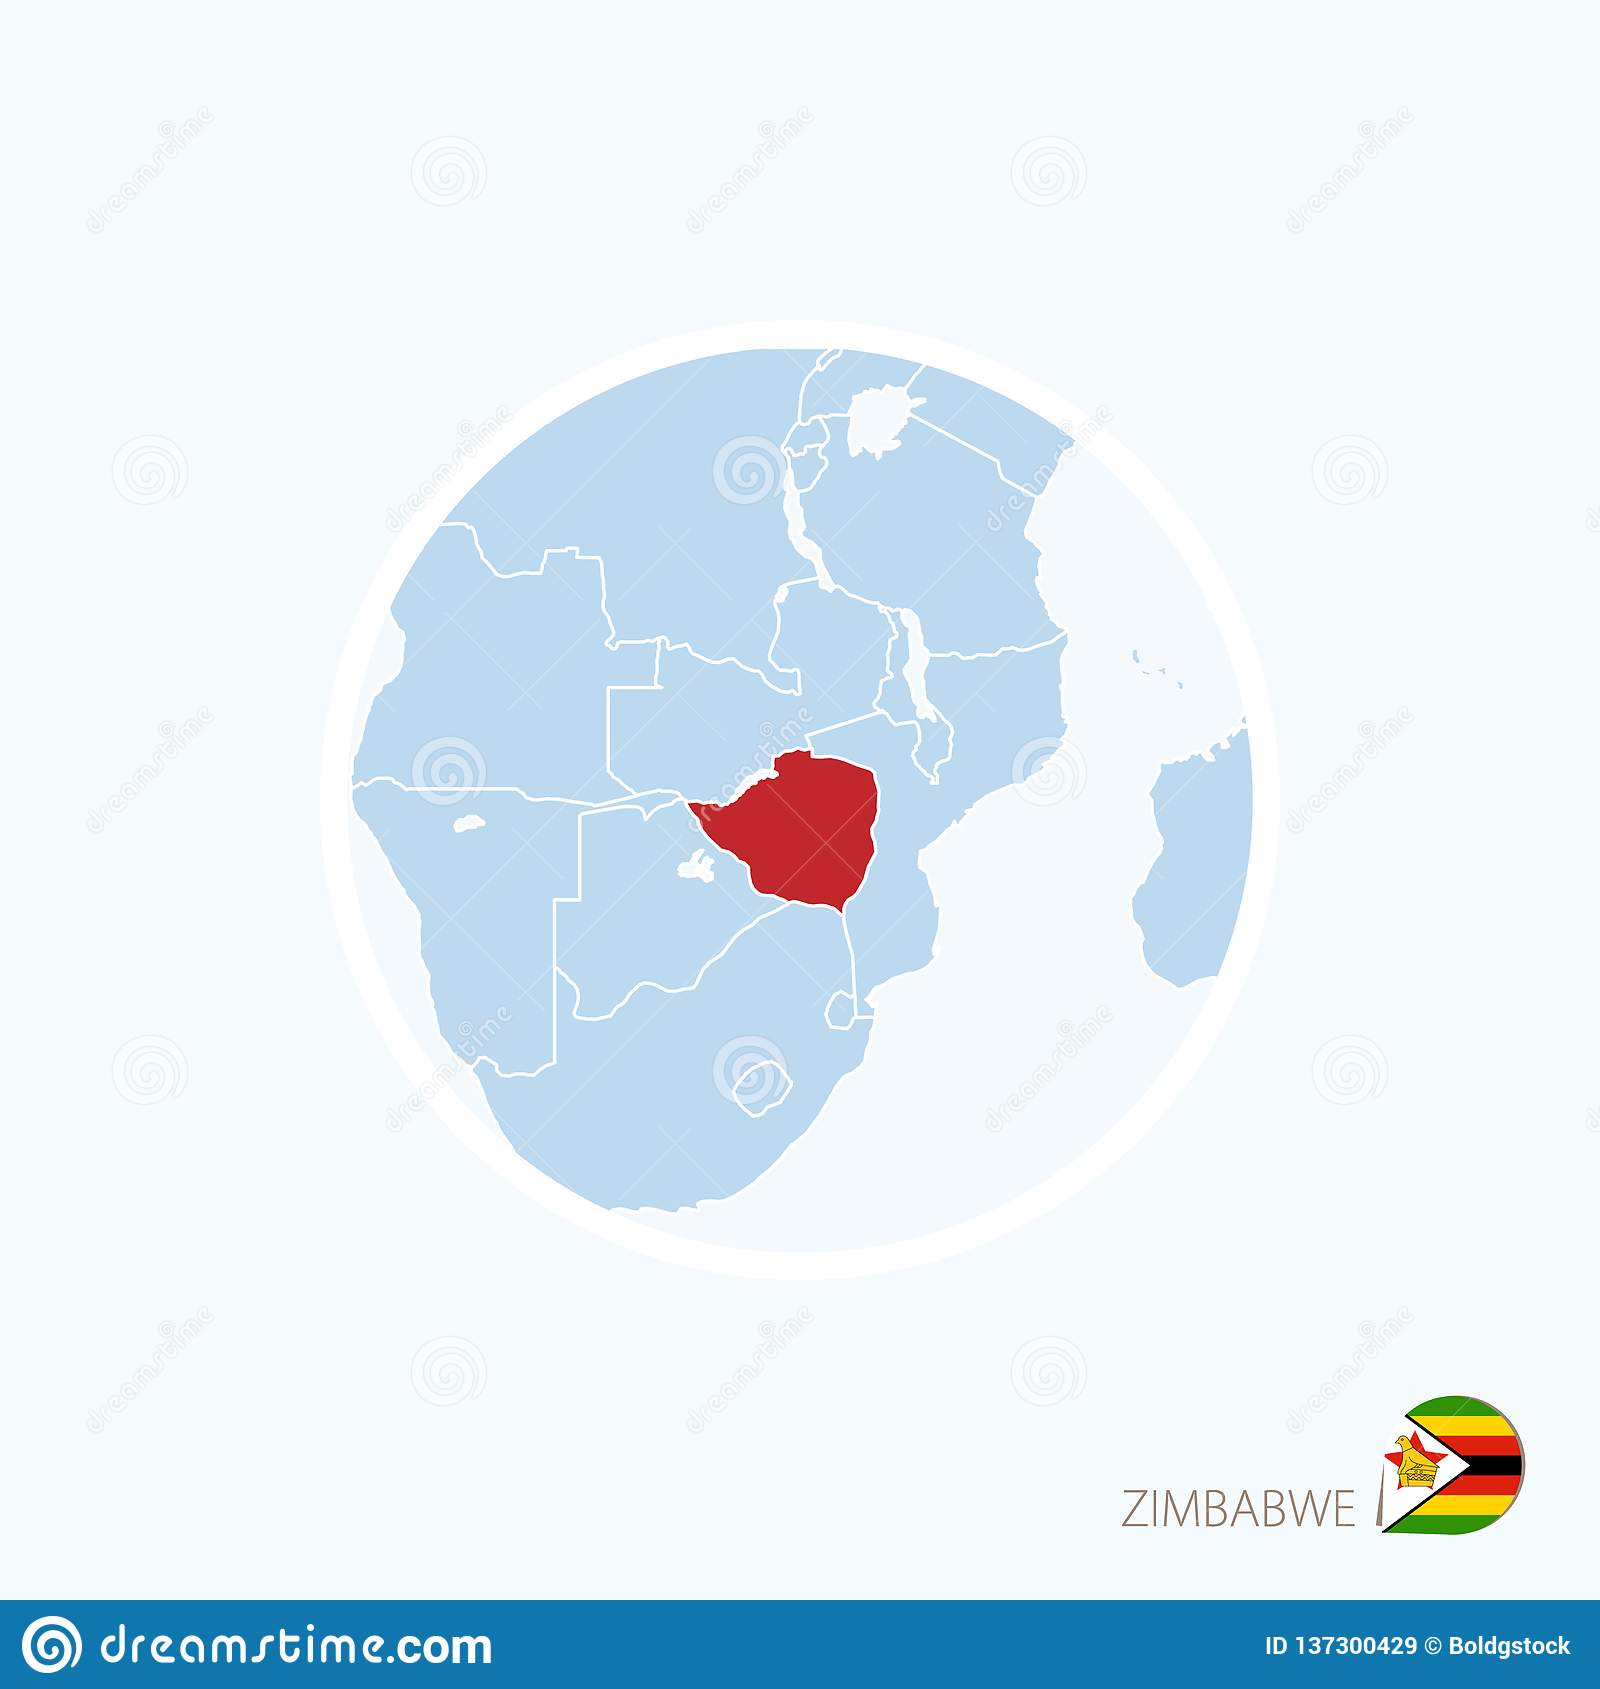 Map Of Africa Showing Zimbabwe.Map Icon Of Zimbabwe Blue Map Of Africa With Highlighted Zimbabwe